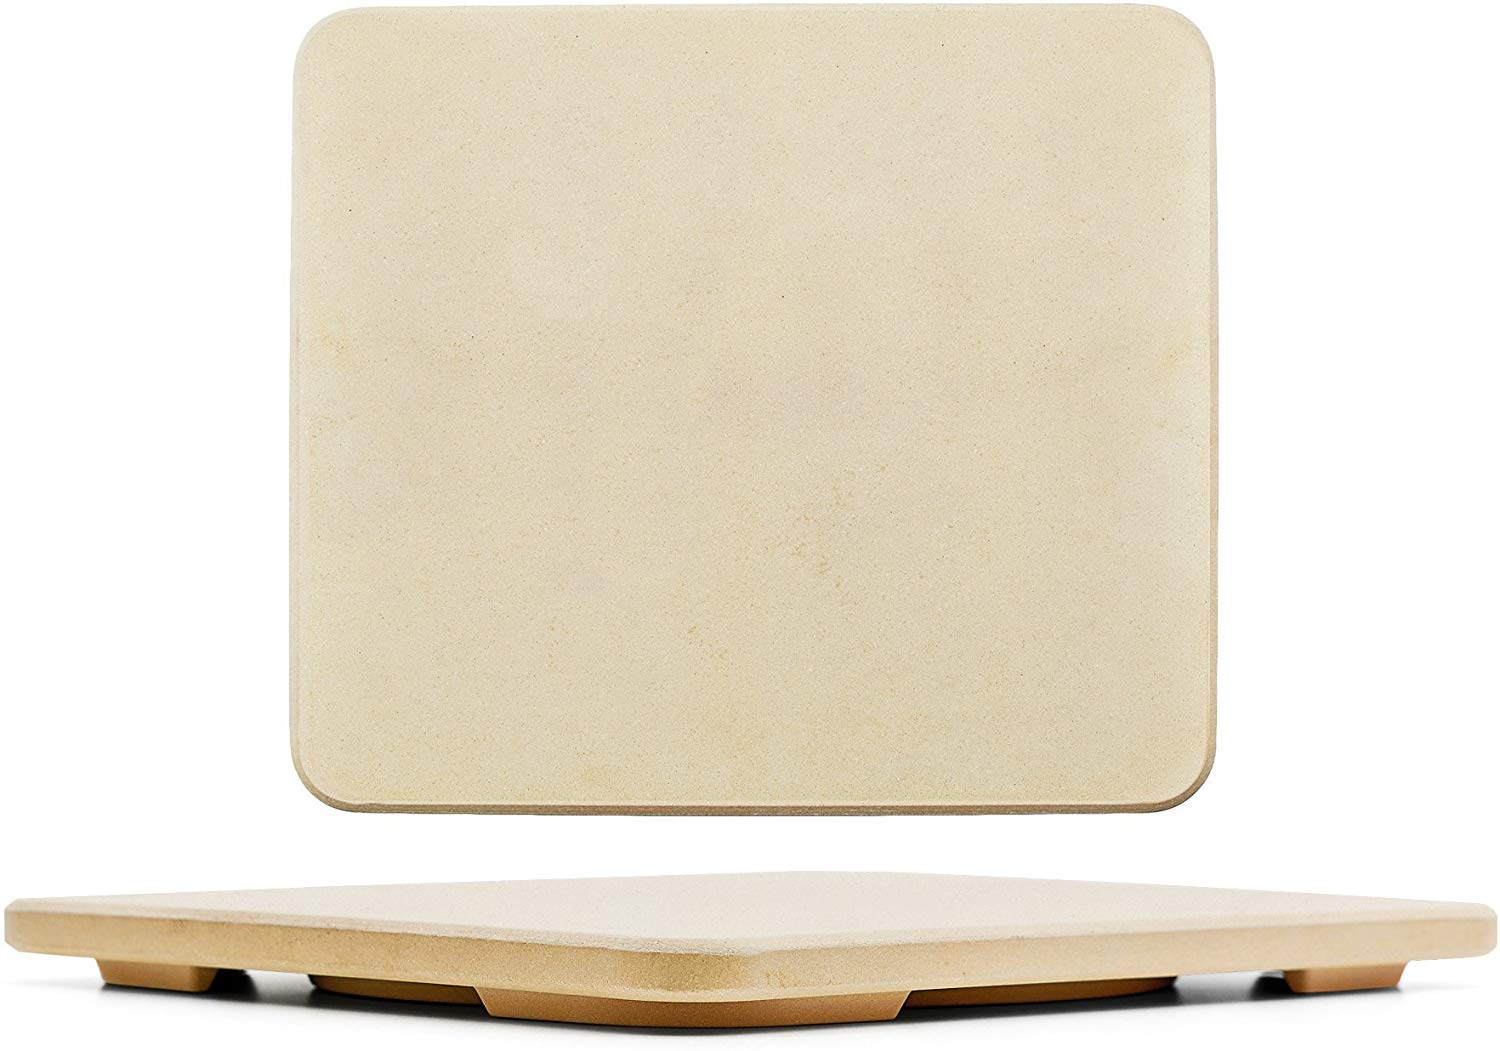 Solido rectangular 14-by-16-inch pizza stone